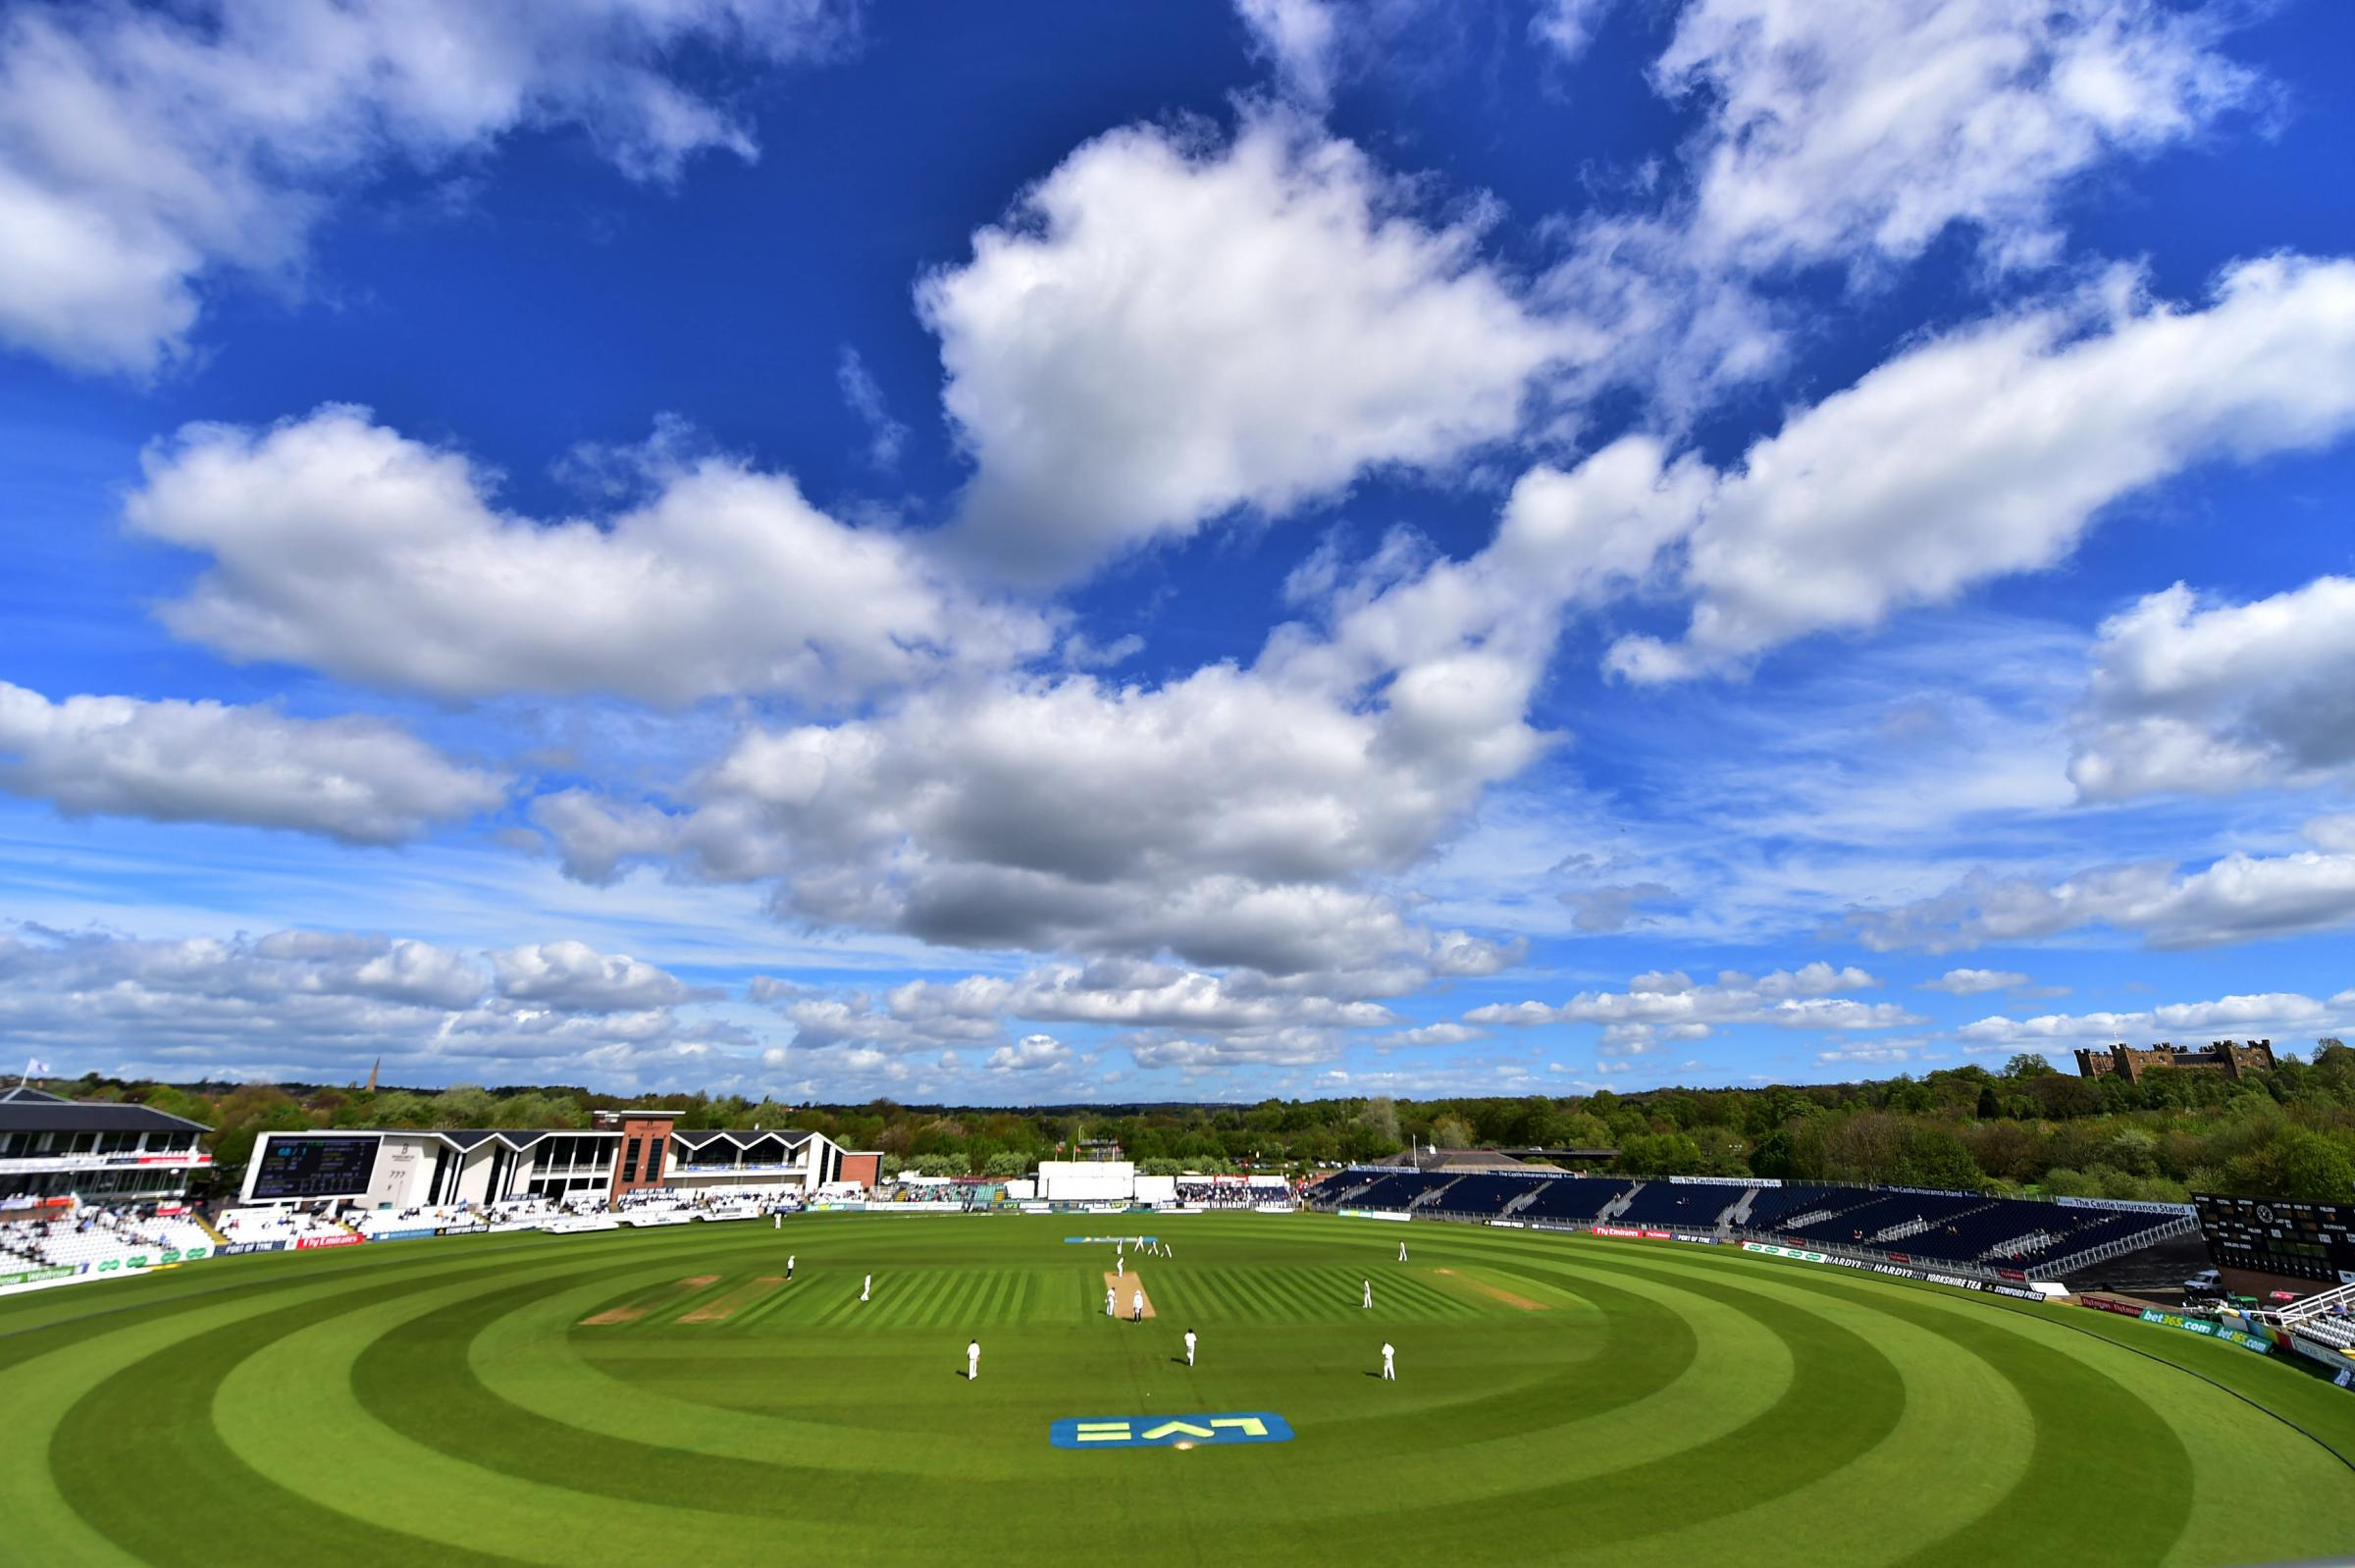 Design firm bowled over by cricket deal